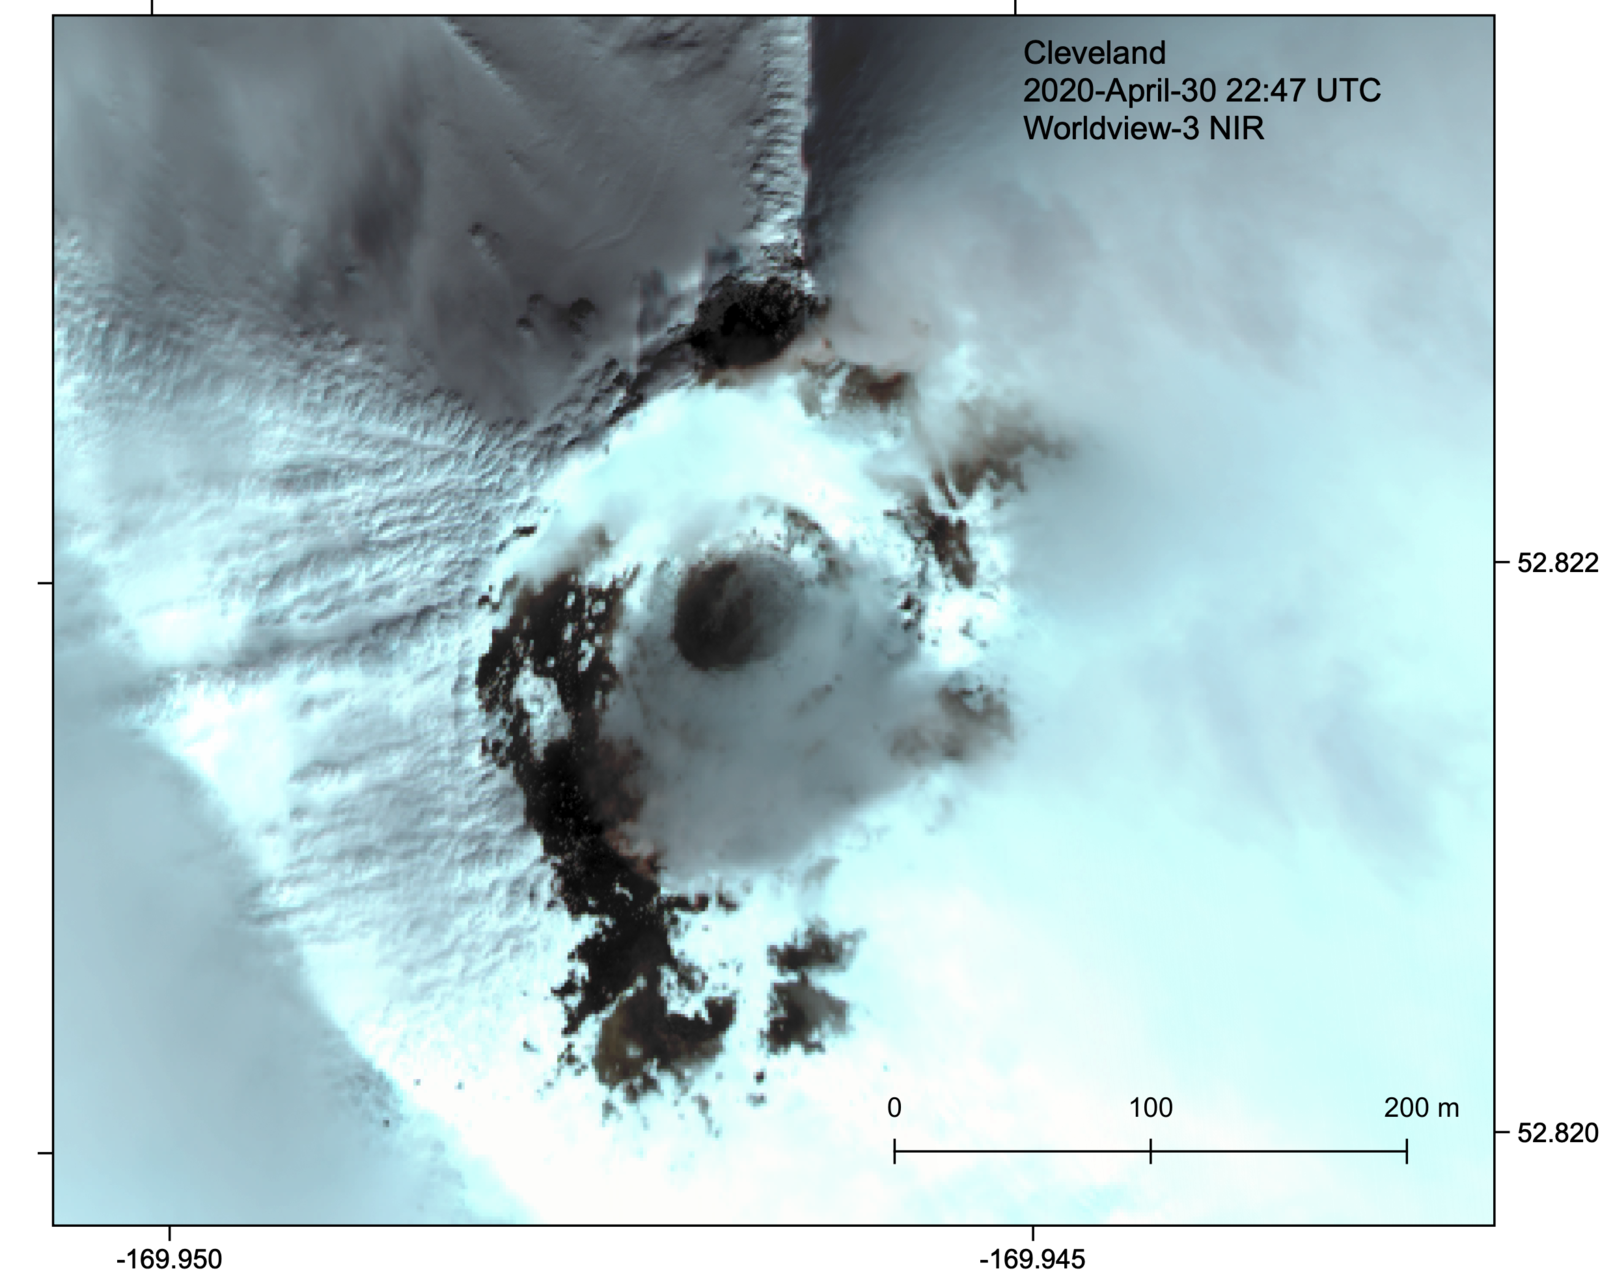 Cleveland - Clear Worldview-3 satellite image of the summit crater and lava dome, April 30, 2020 - Digital Globe image via NextView License / Matt Loewen / in AVO